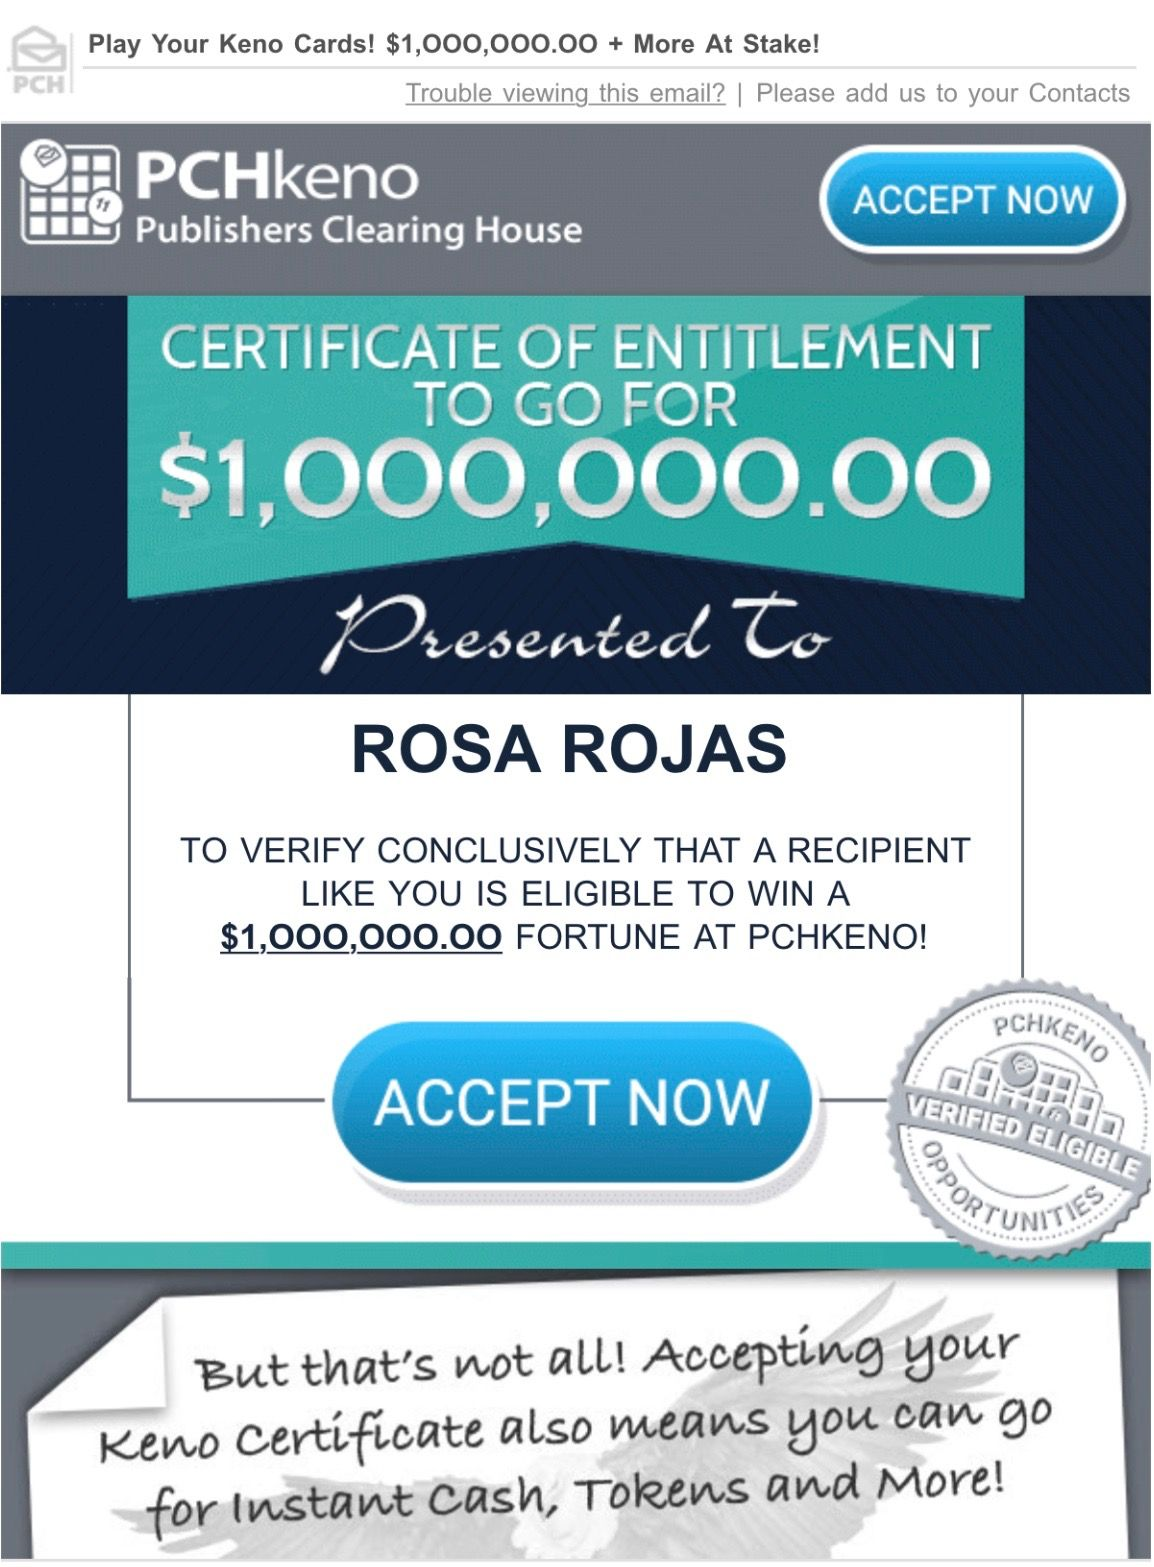 PCH CERTIFICATE Of ENTITLEMENT TO GO FOR 1,000,000.00